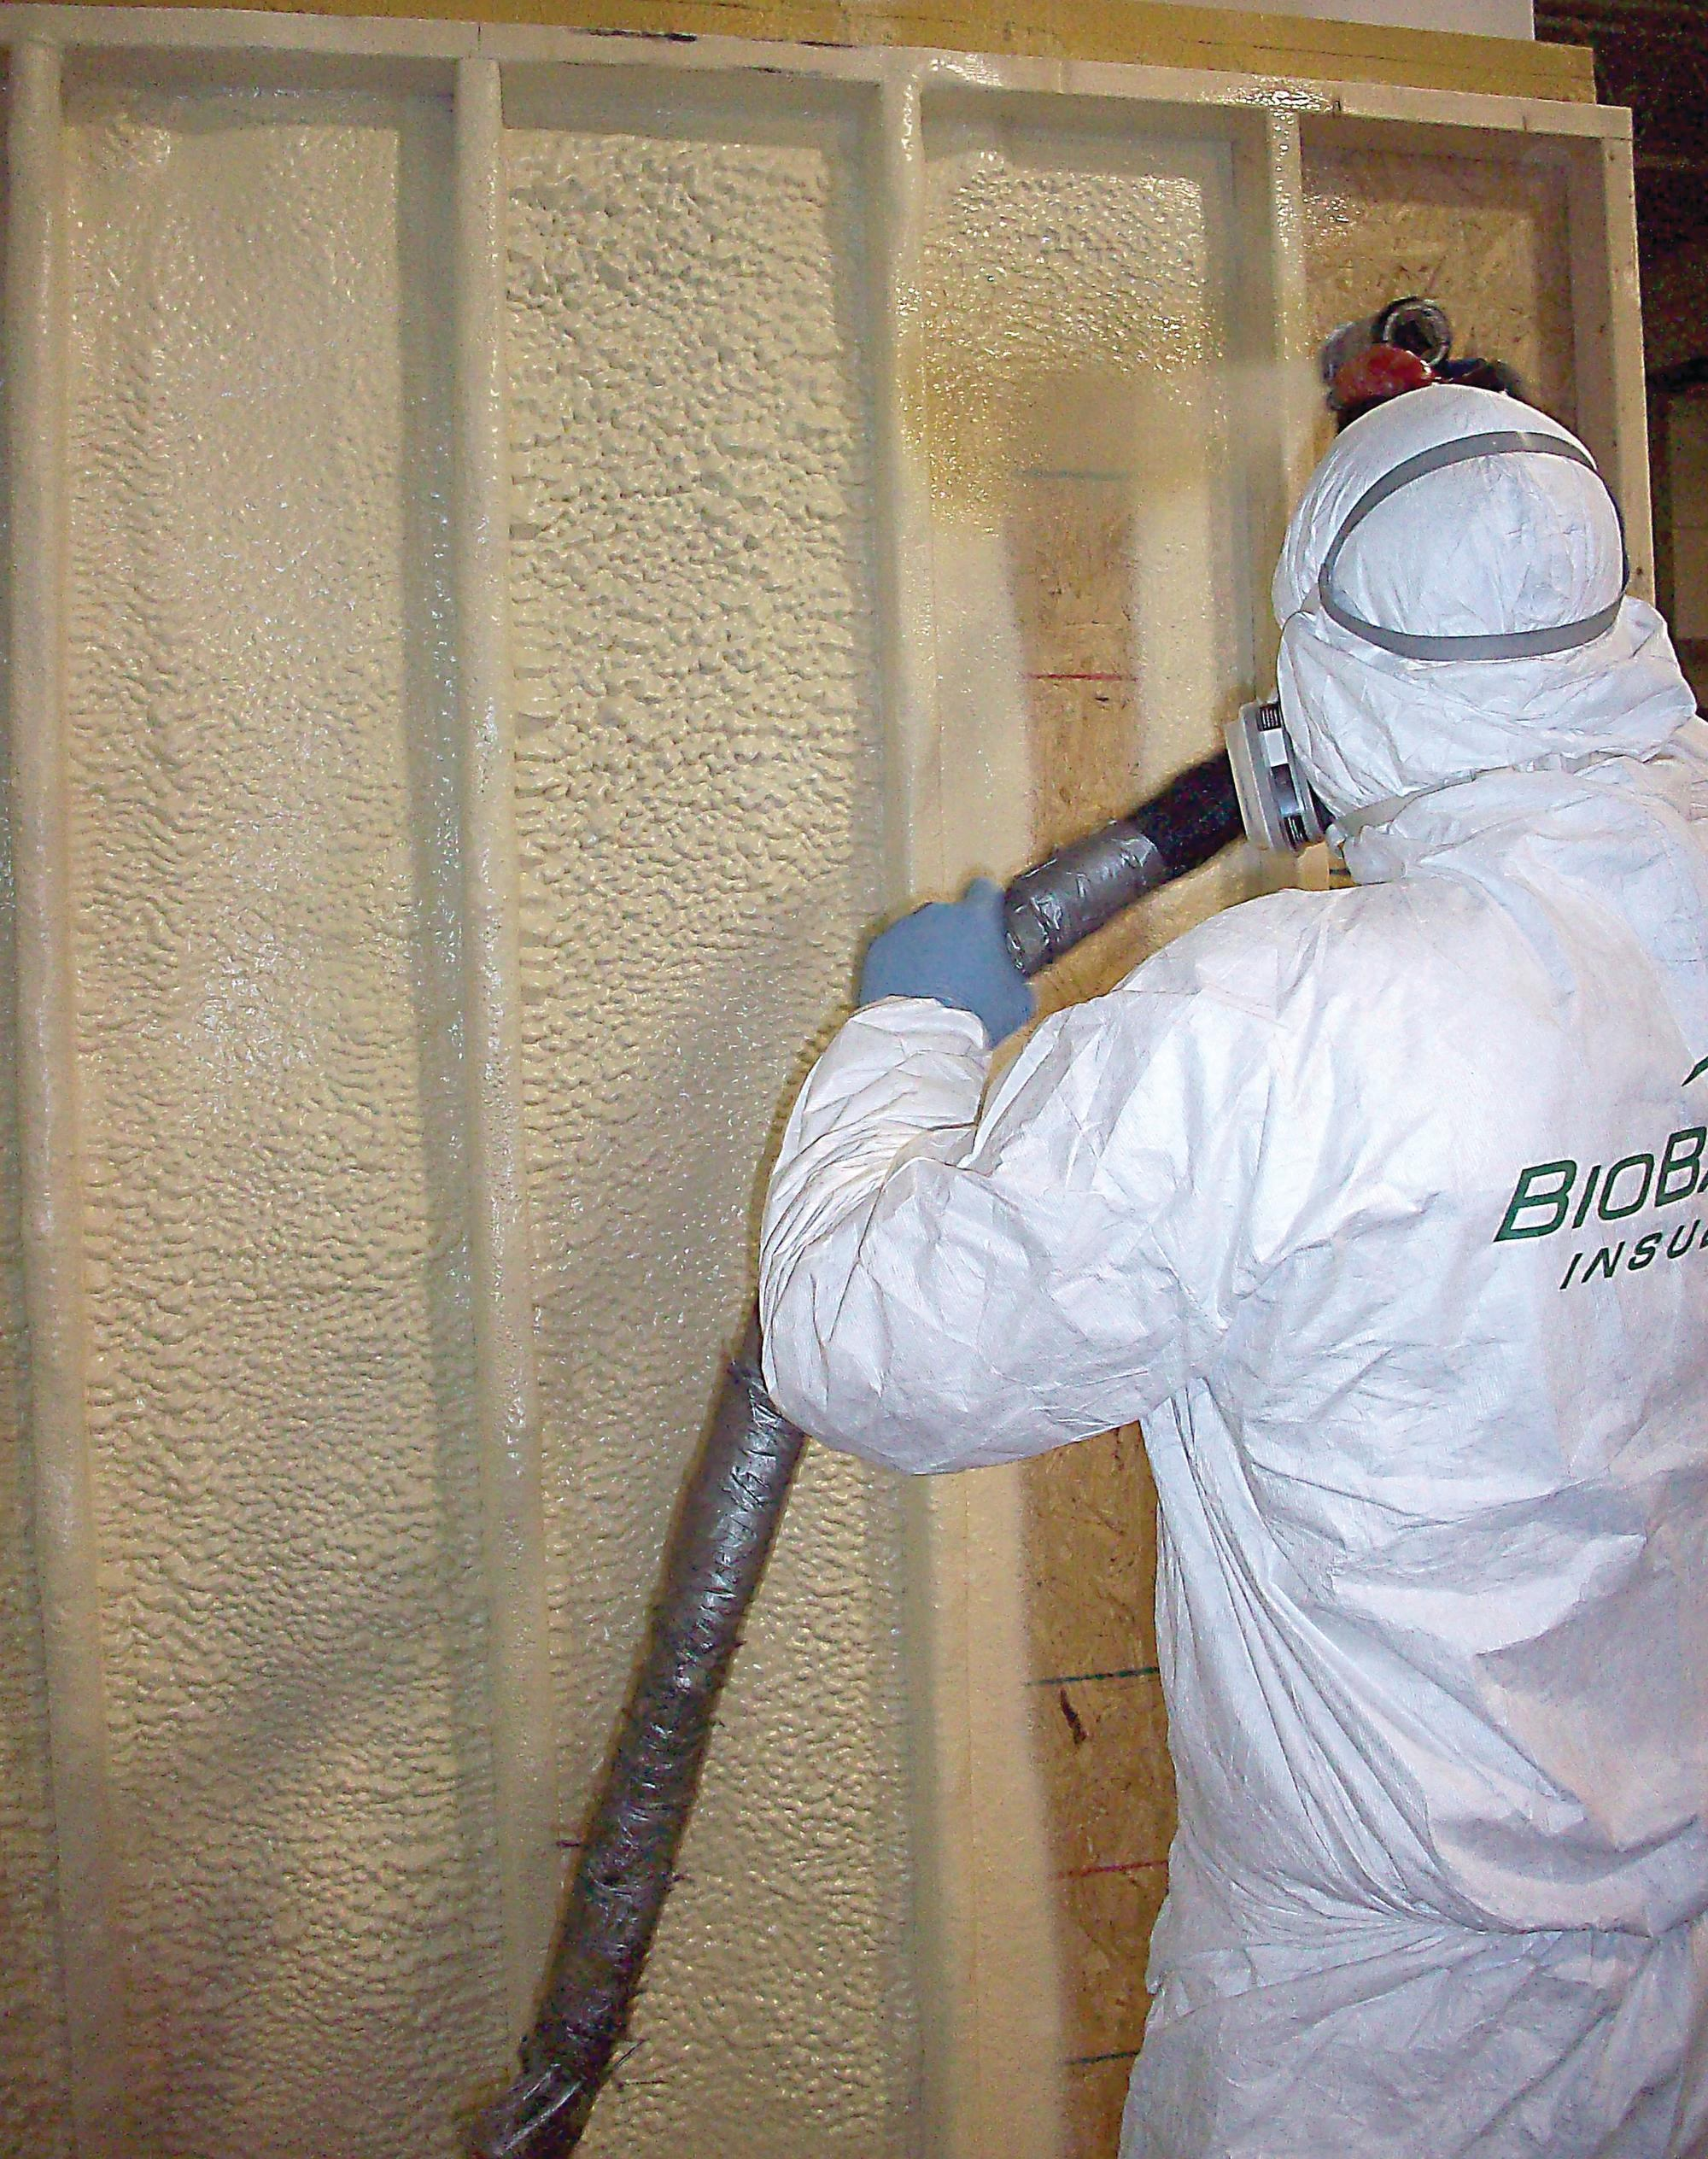 Soy Based Spray Foam Insulation From Biobased Ecobuilding